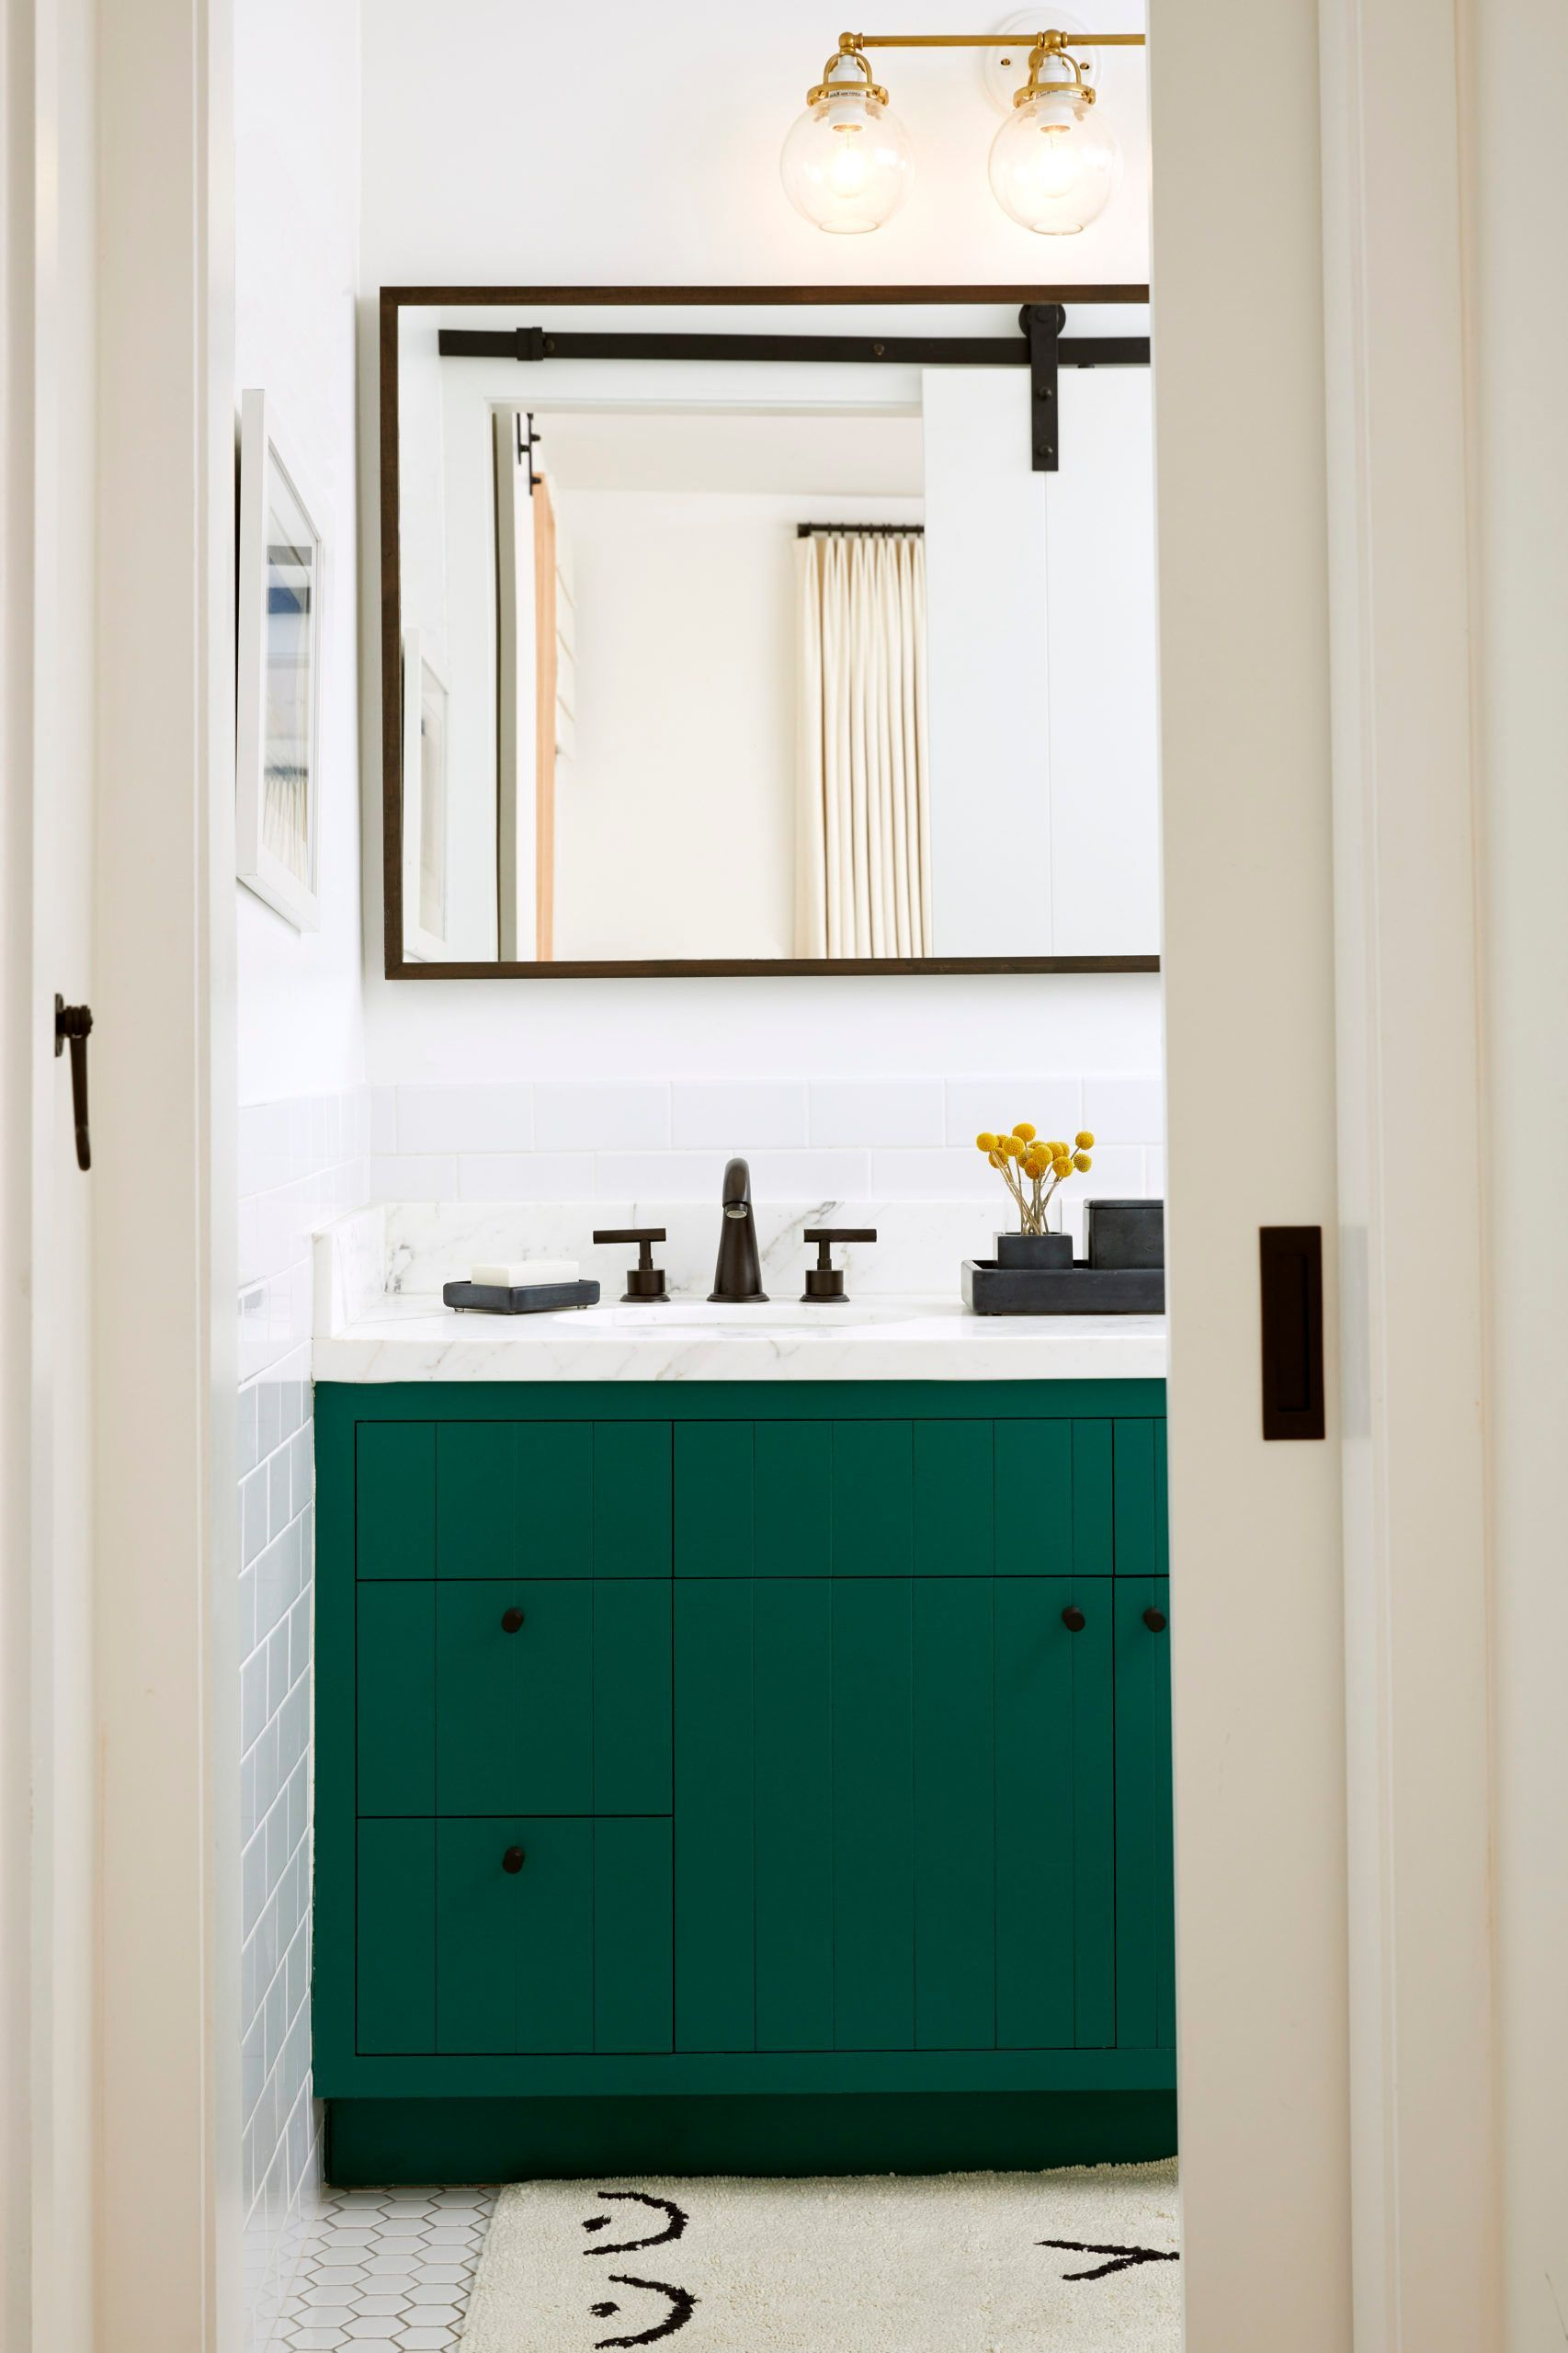 Home Tour Tile And Wallpaper Give A Cottage Modern Spanish Style Green Bathroom Dark Green Bathrooms Green Vanity [ 2560 x 1706 Pixel ]